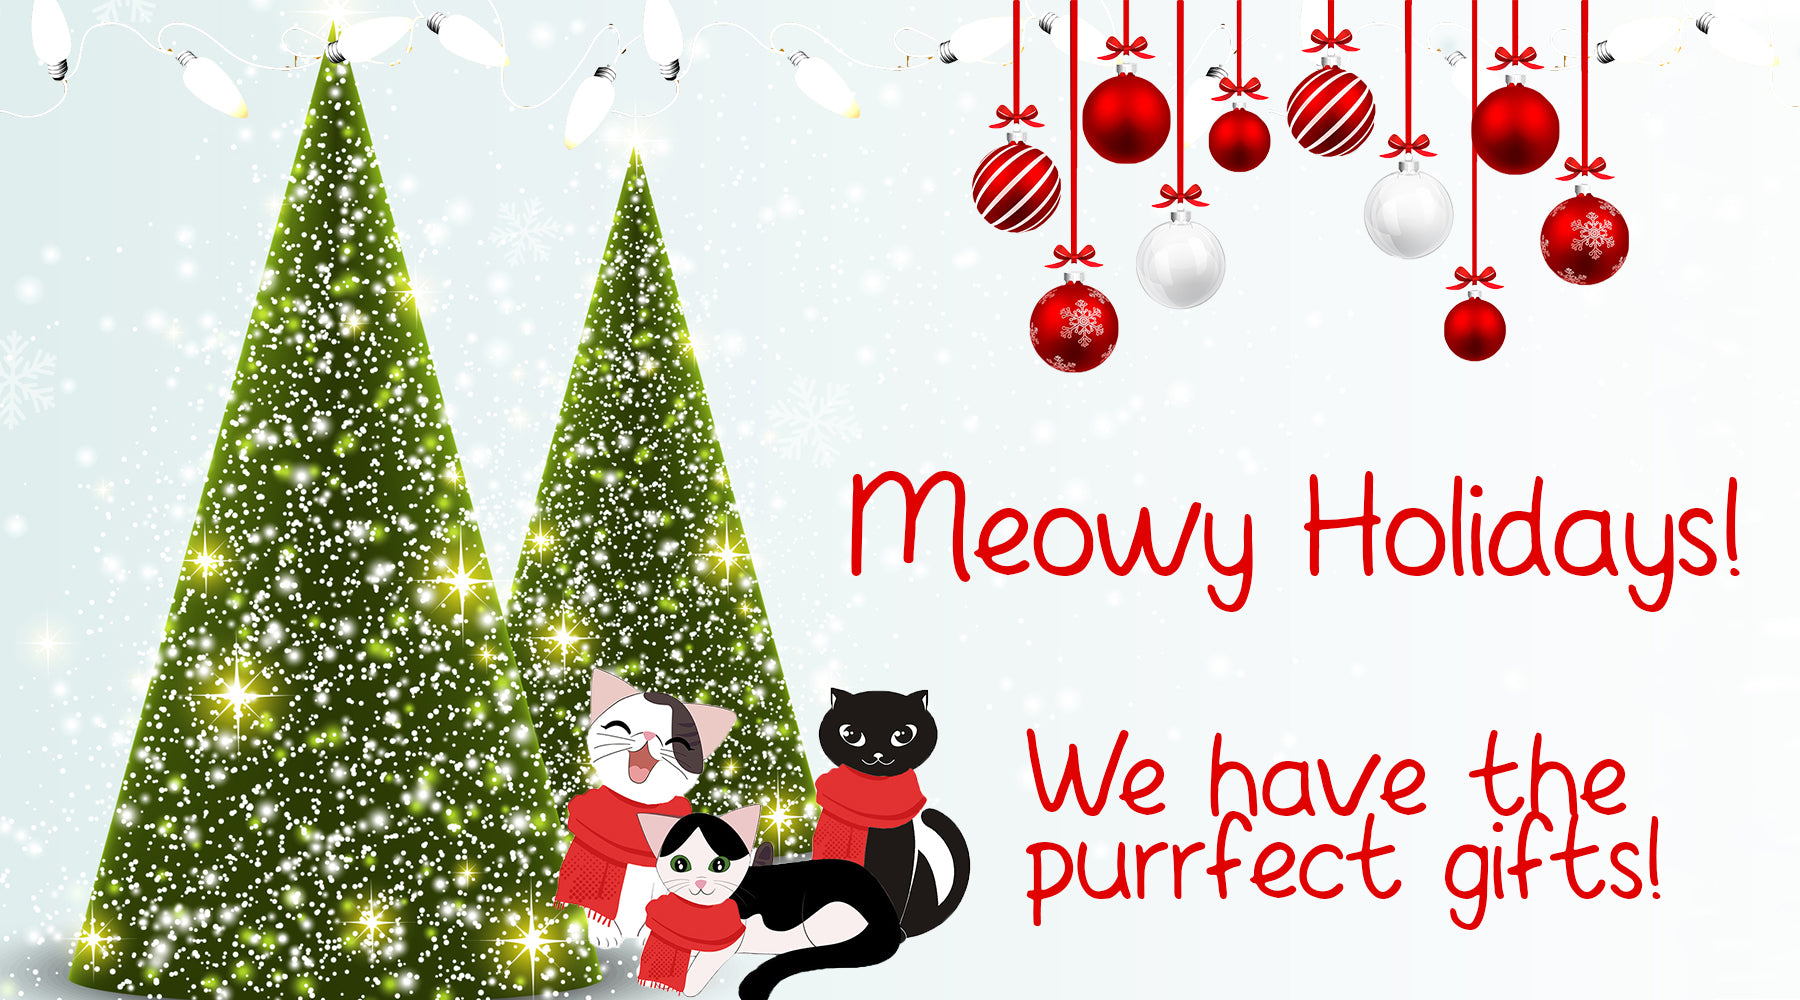 Meowy Holidays!  We Have the Purrfect Gifts